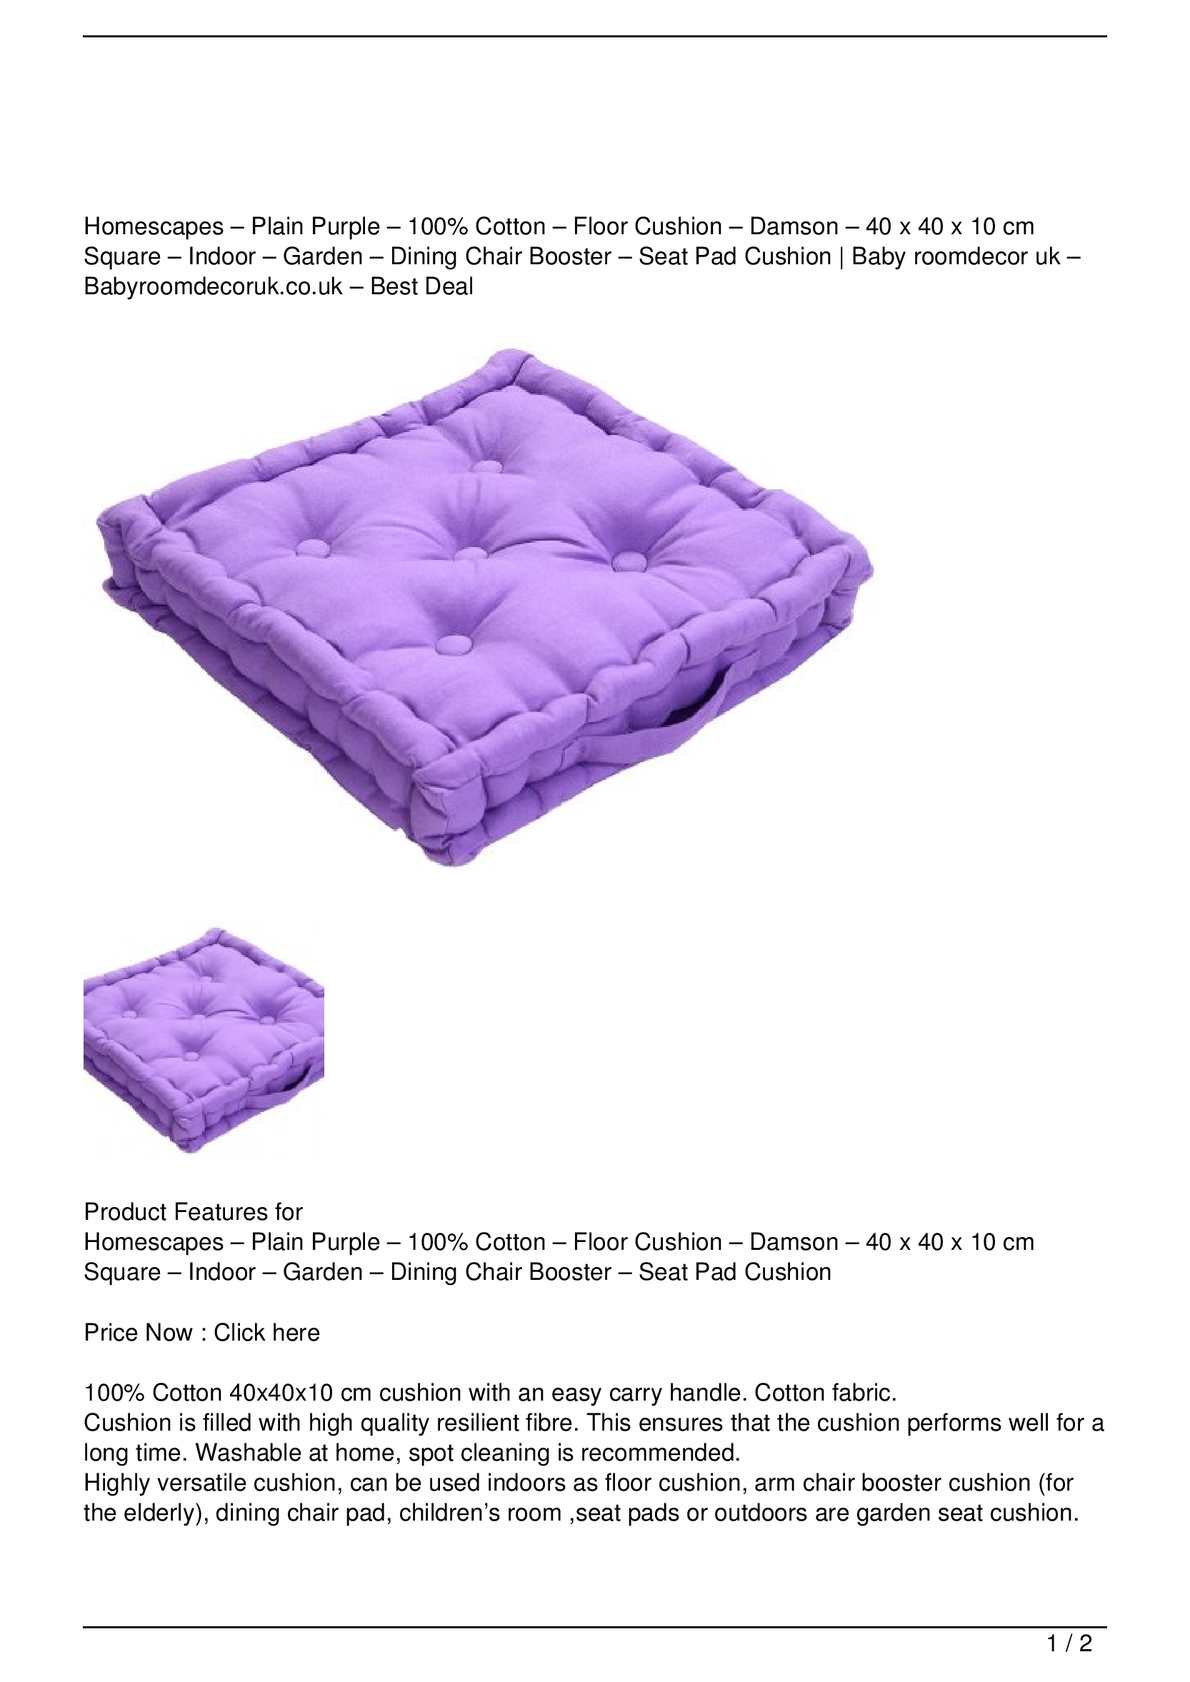 Picture of: Calameo Homescapes Plain Purple 100 Cotton Floor Cushion Damson 40 X 40 X 10 Cm Square Indoor Garden Dining Chair Booster Seat Pad Cushion Big Sale